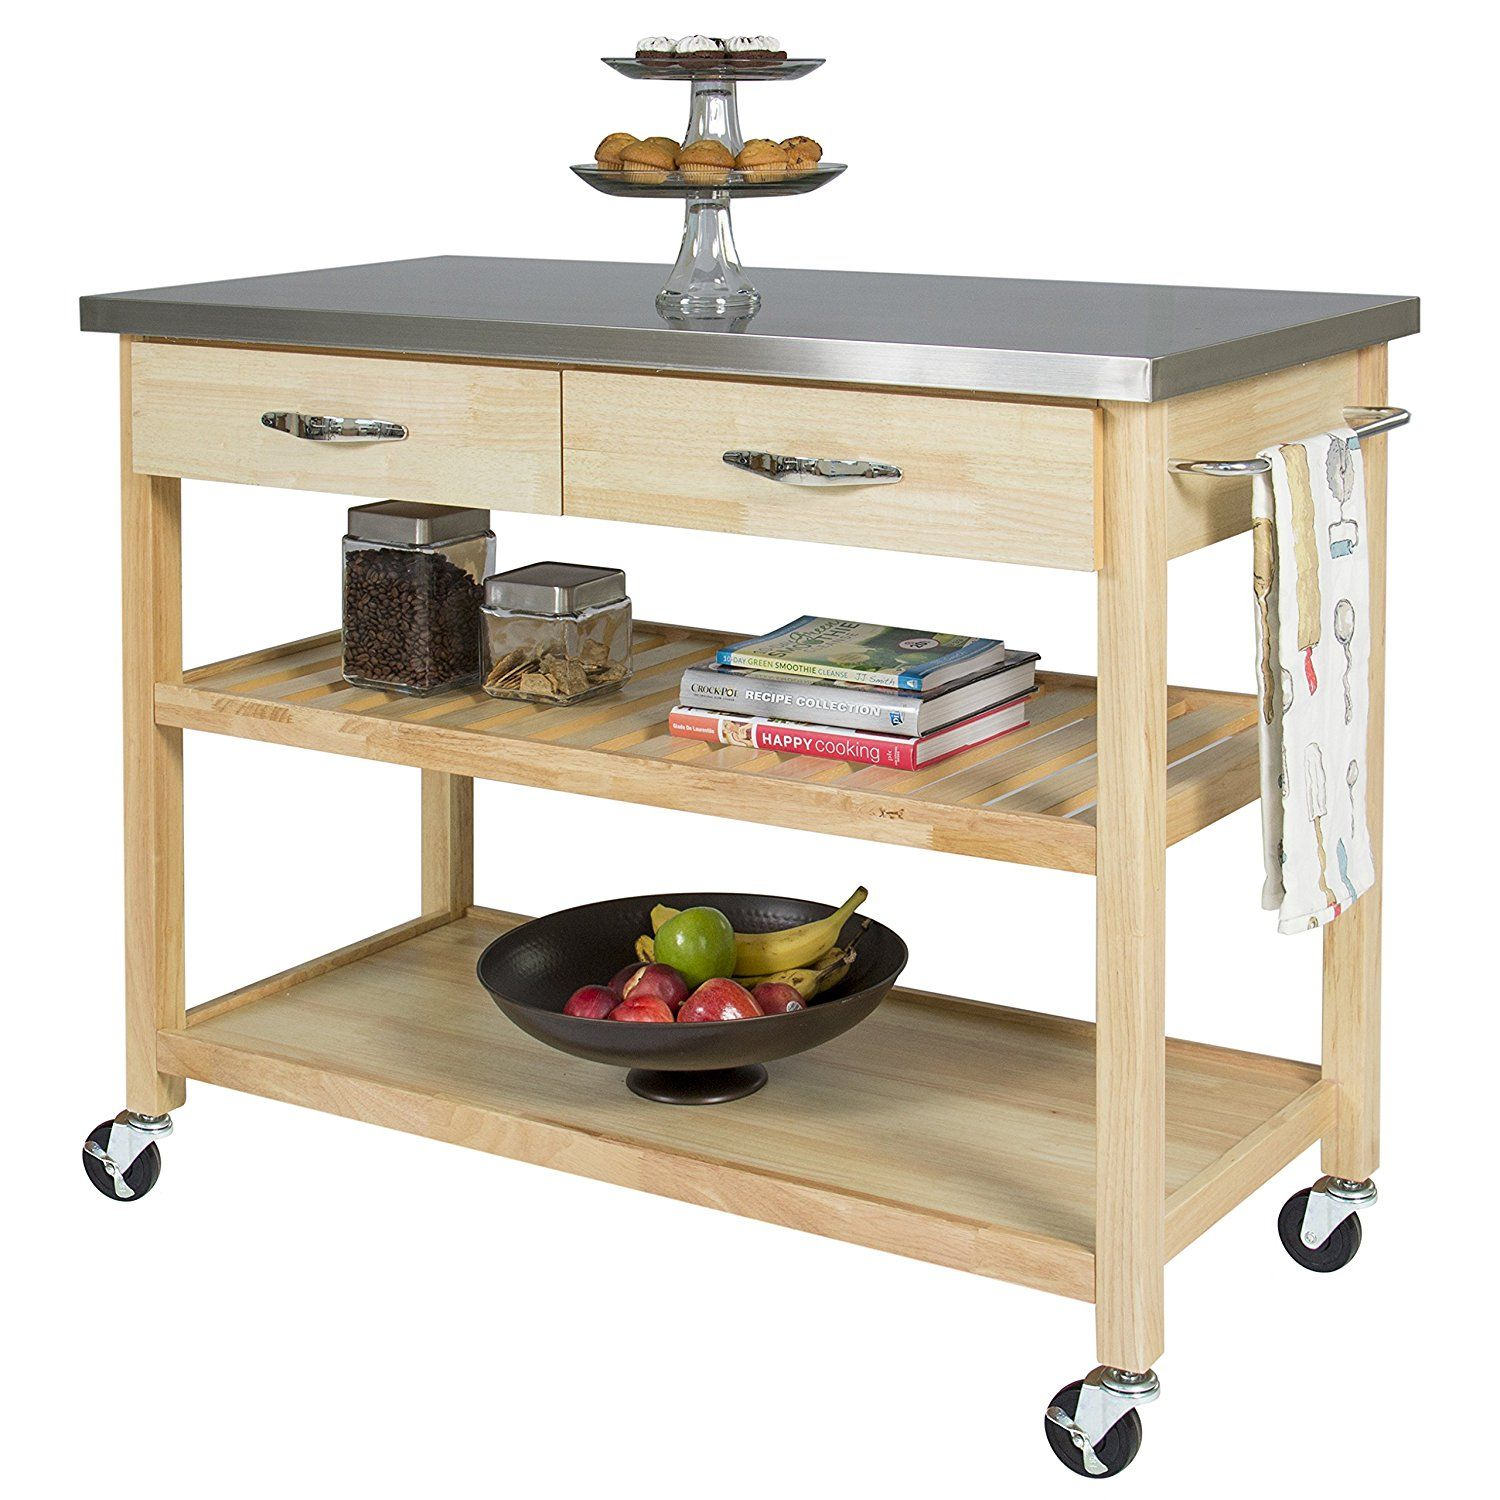 Restaurant Kitchen Metal Shelves amazon - bcp natural wood kitchen island utility cart with